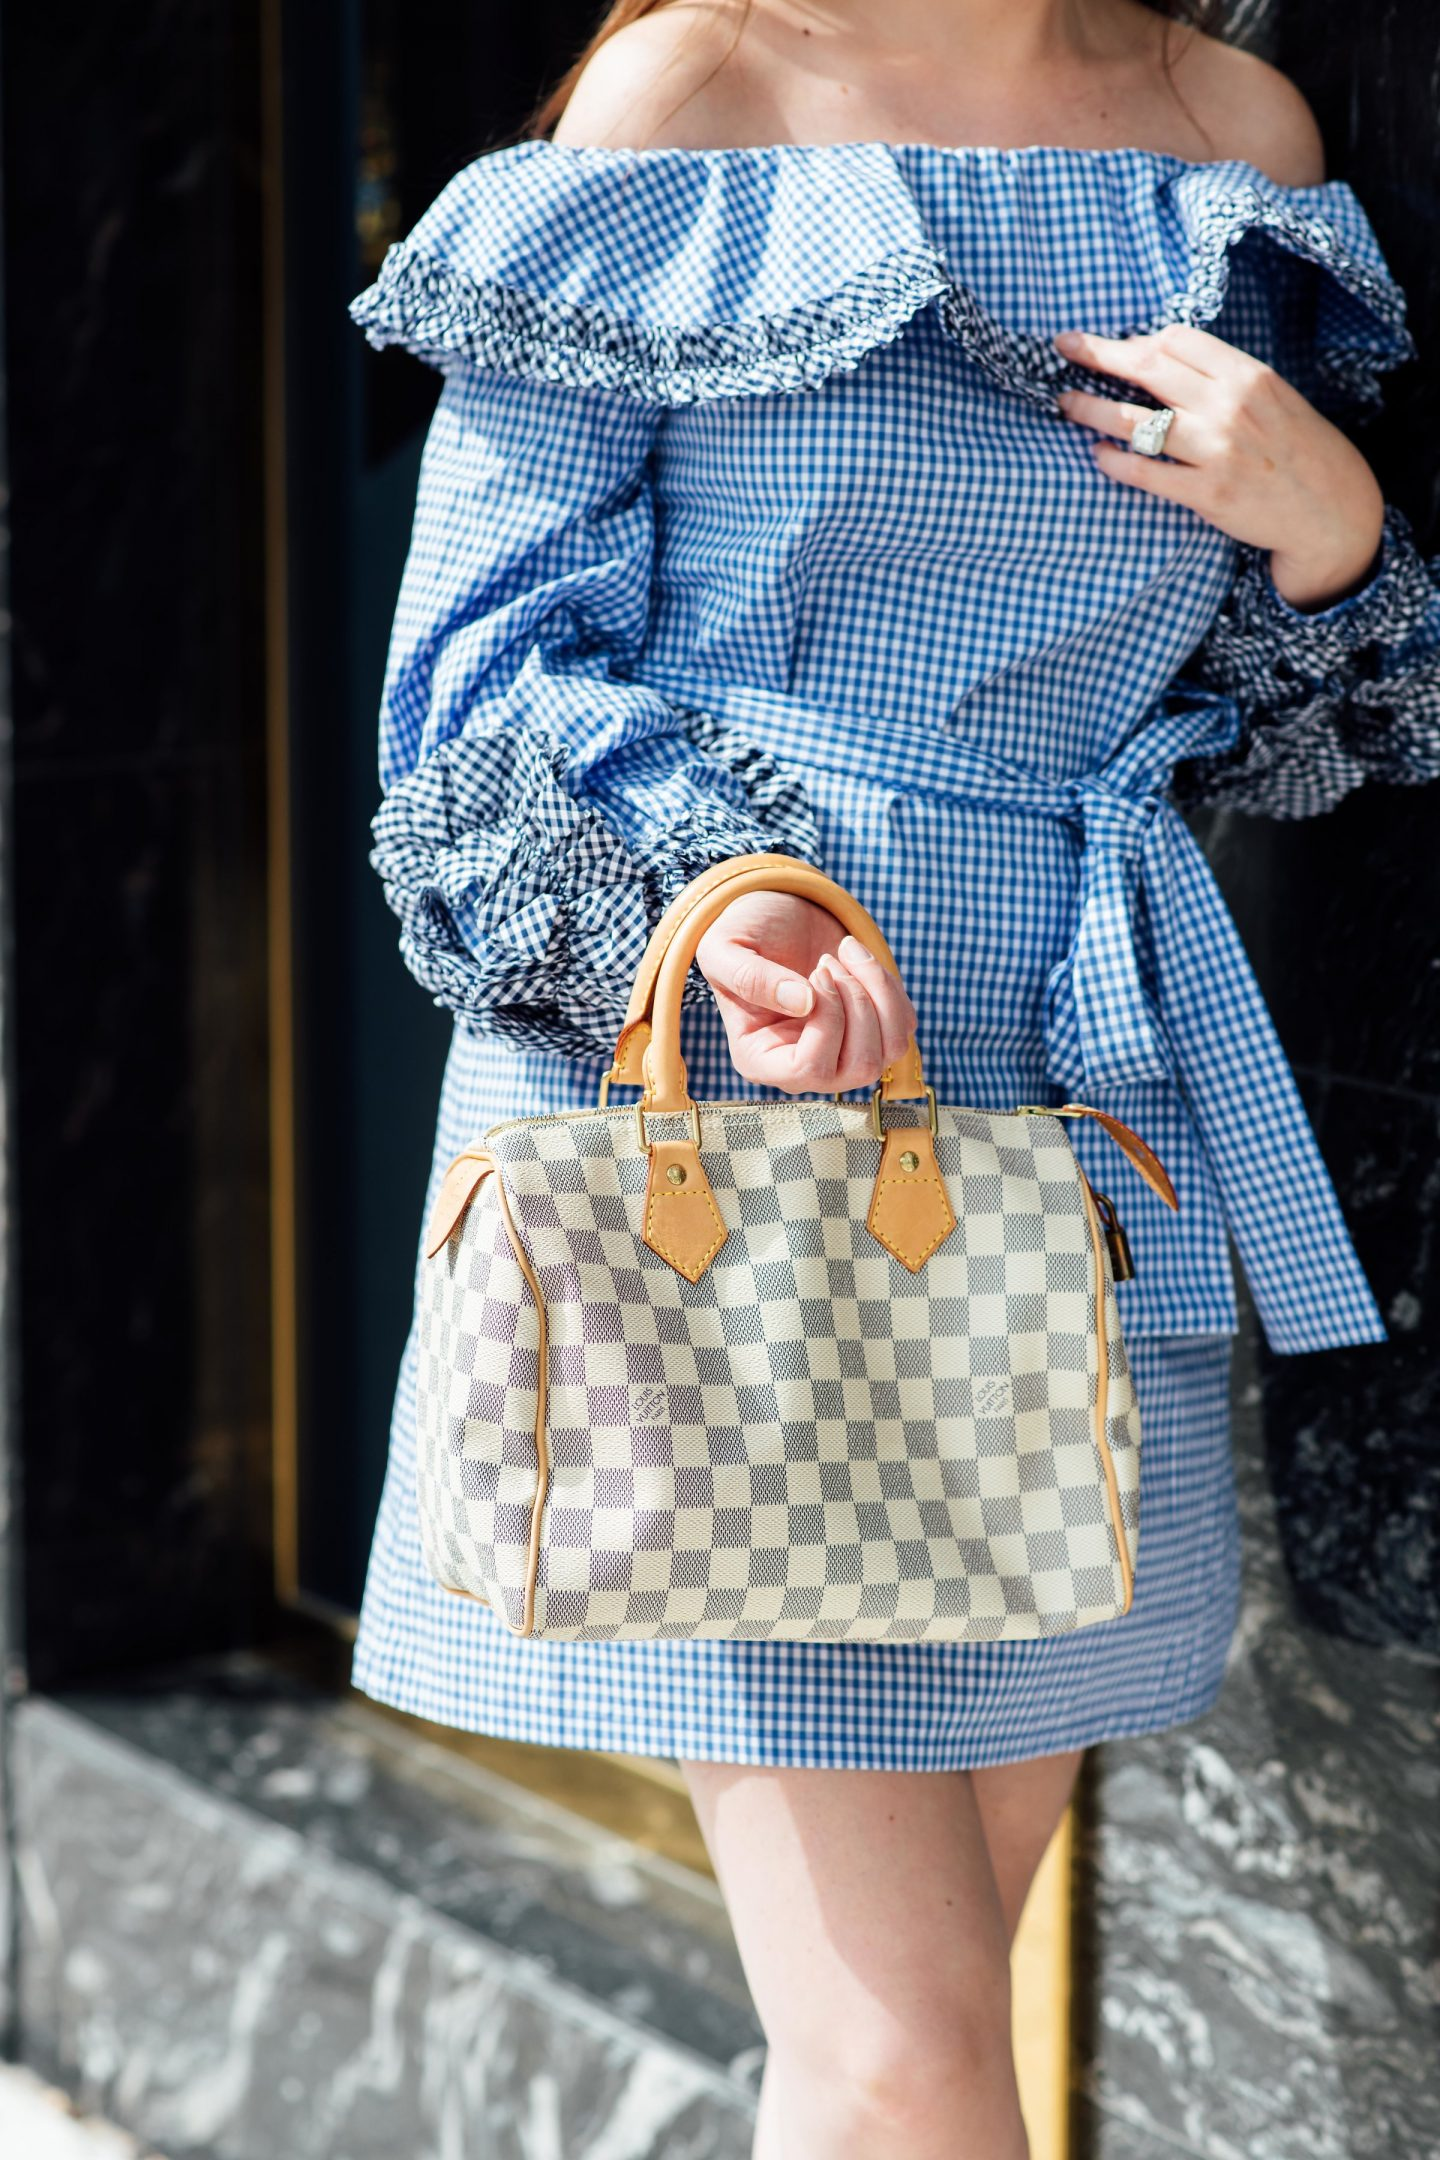 Going crazy for Gingham, gingham dress, Alexis dress, Marc fisher Alida wedges, Marc fisher wedges, Louis Vuitton speedy Azur, summer fashion 2018, blue and white checkered dress